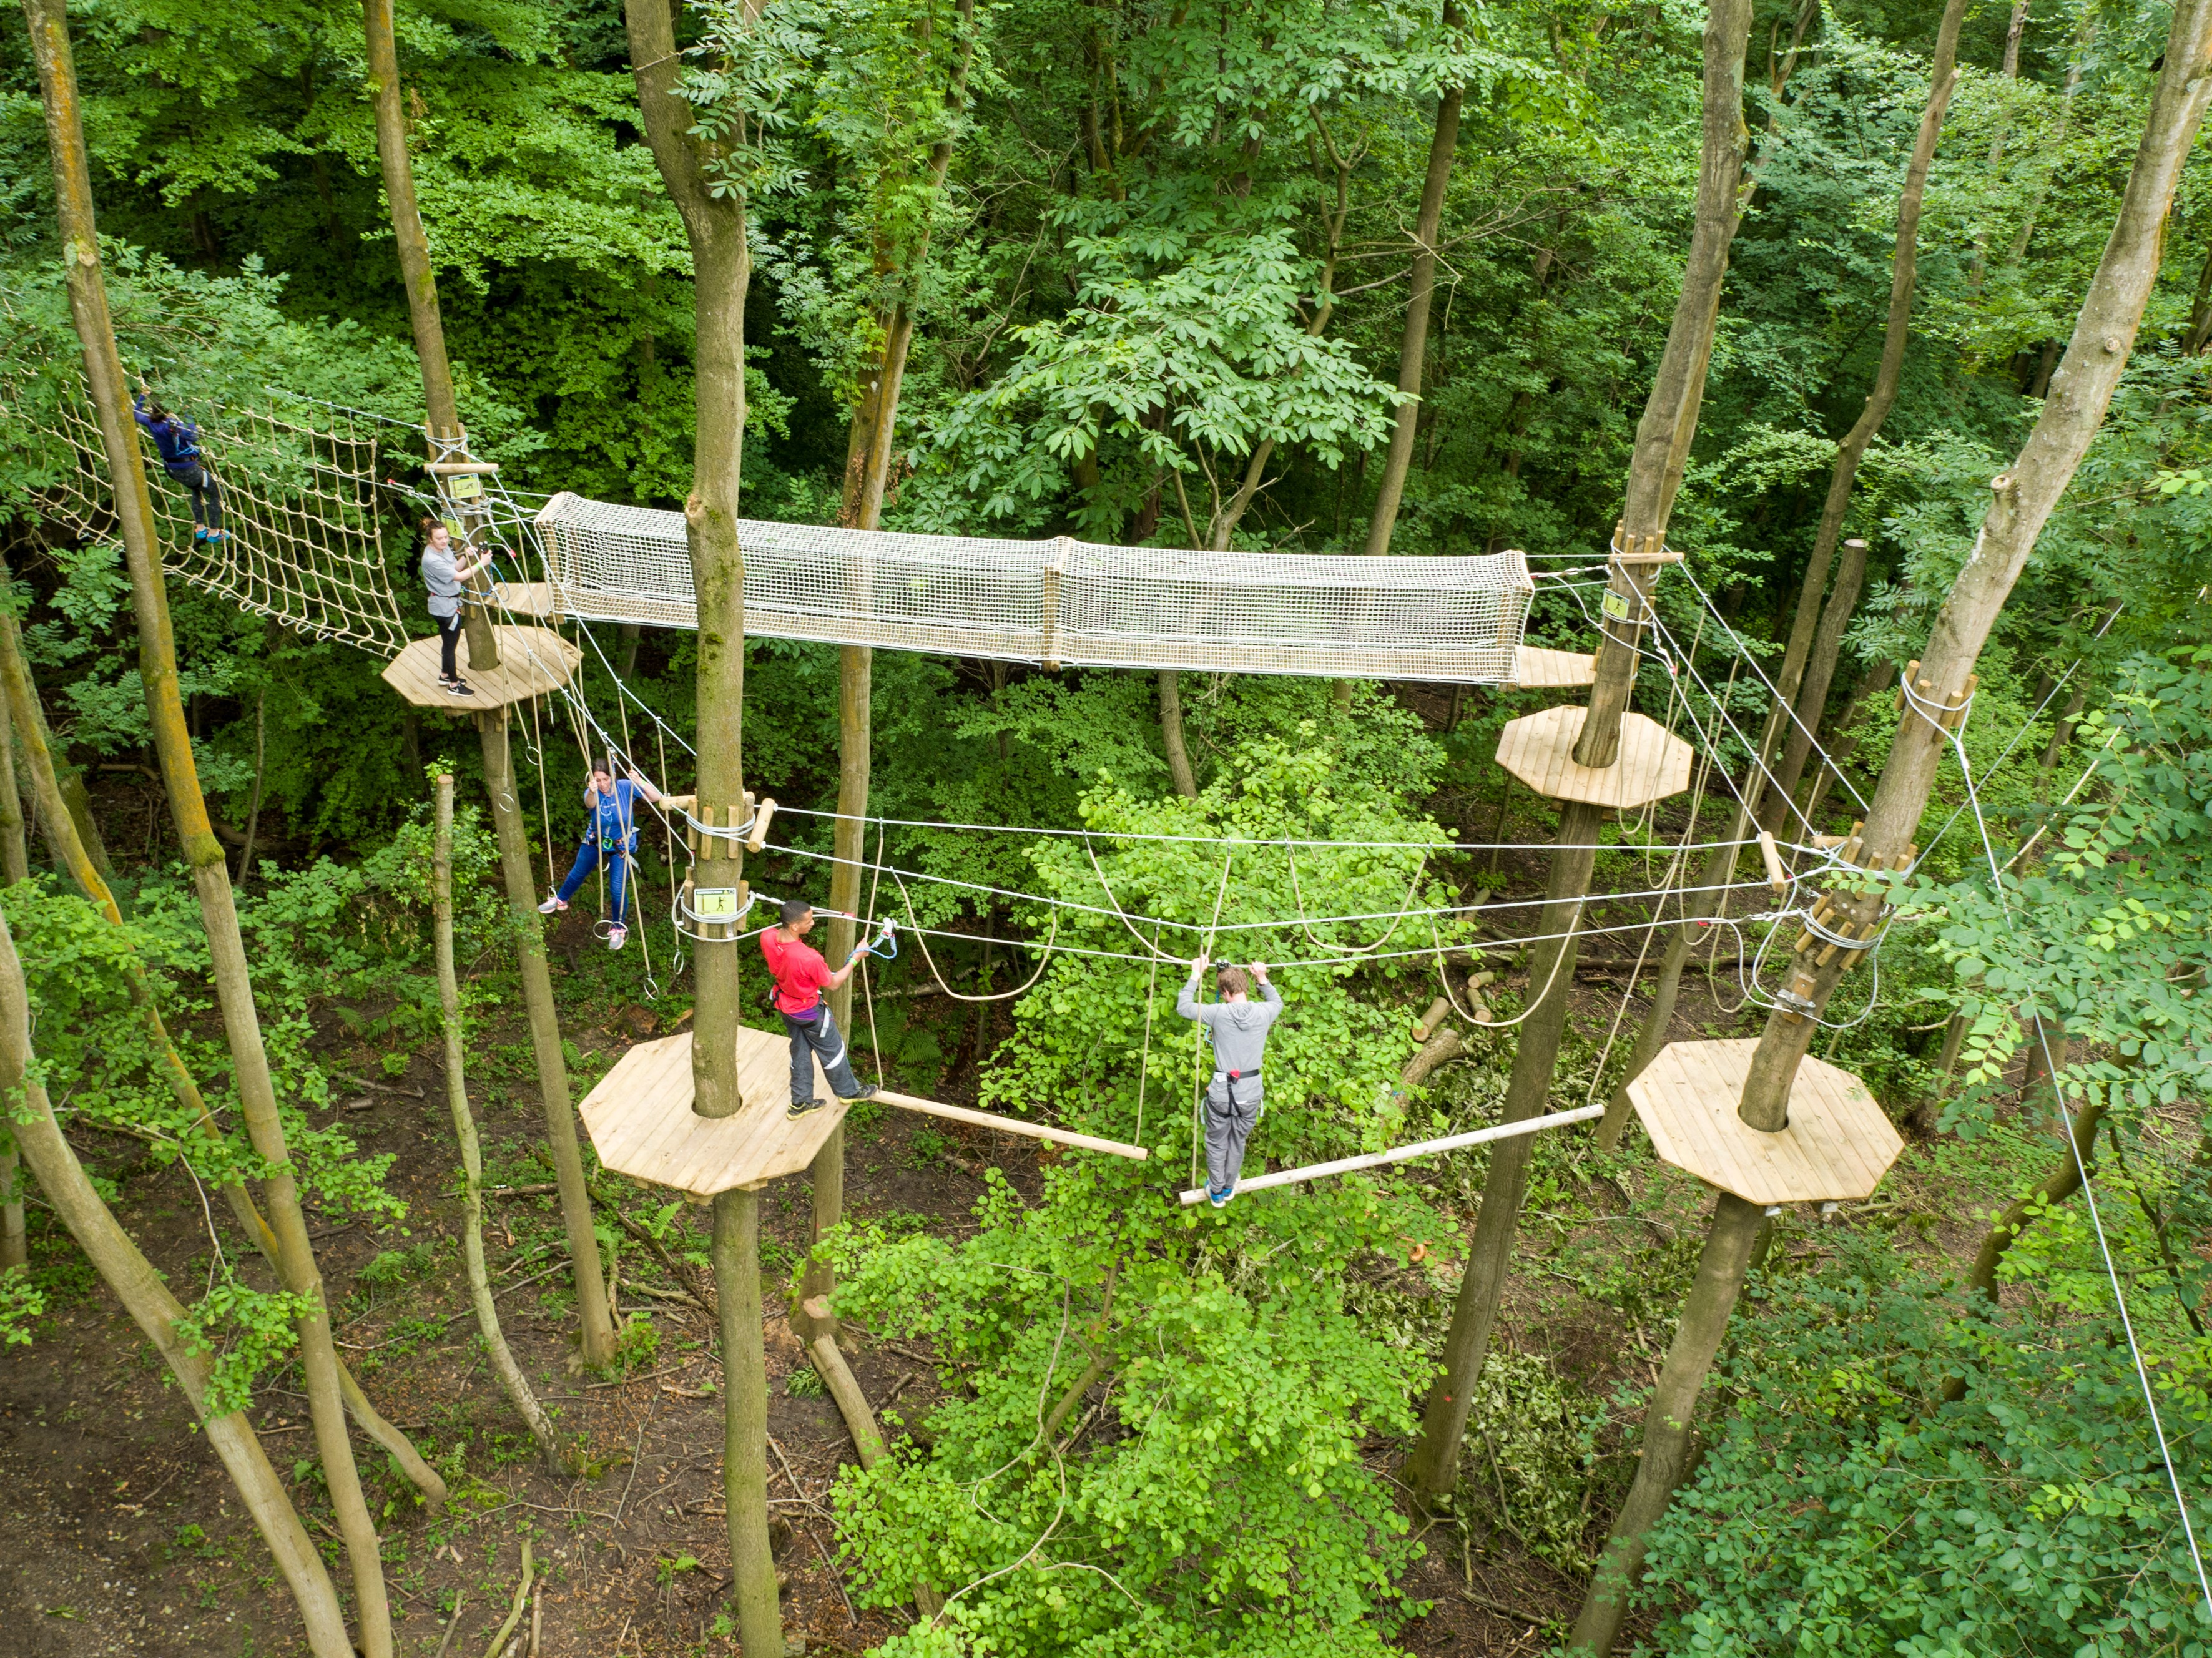 Brand New Go Ape Tree Top Adventure At Chessington World Of Adventures Resort